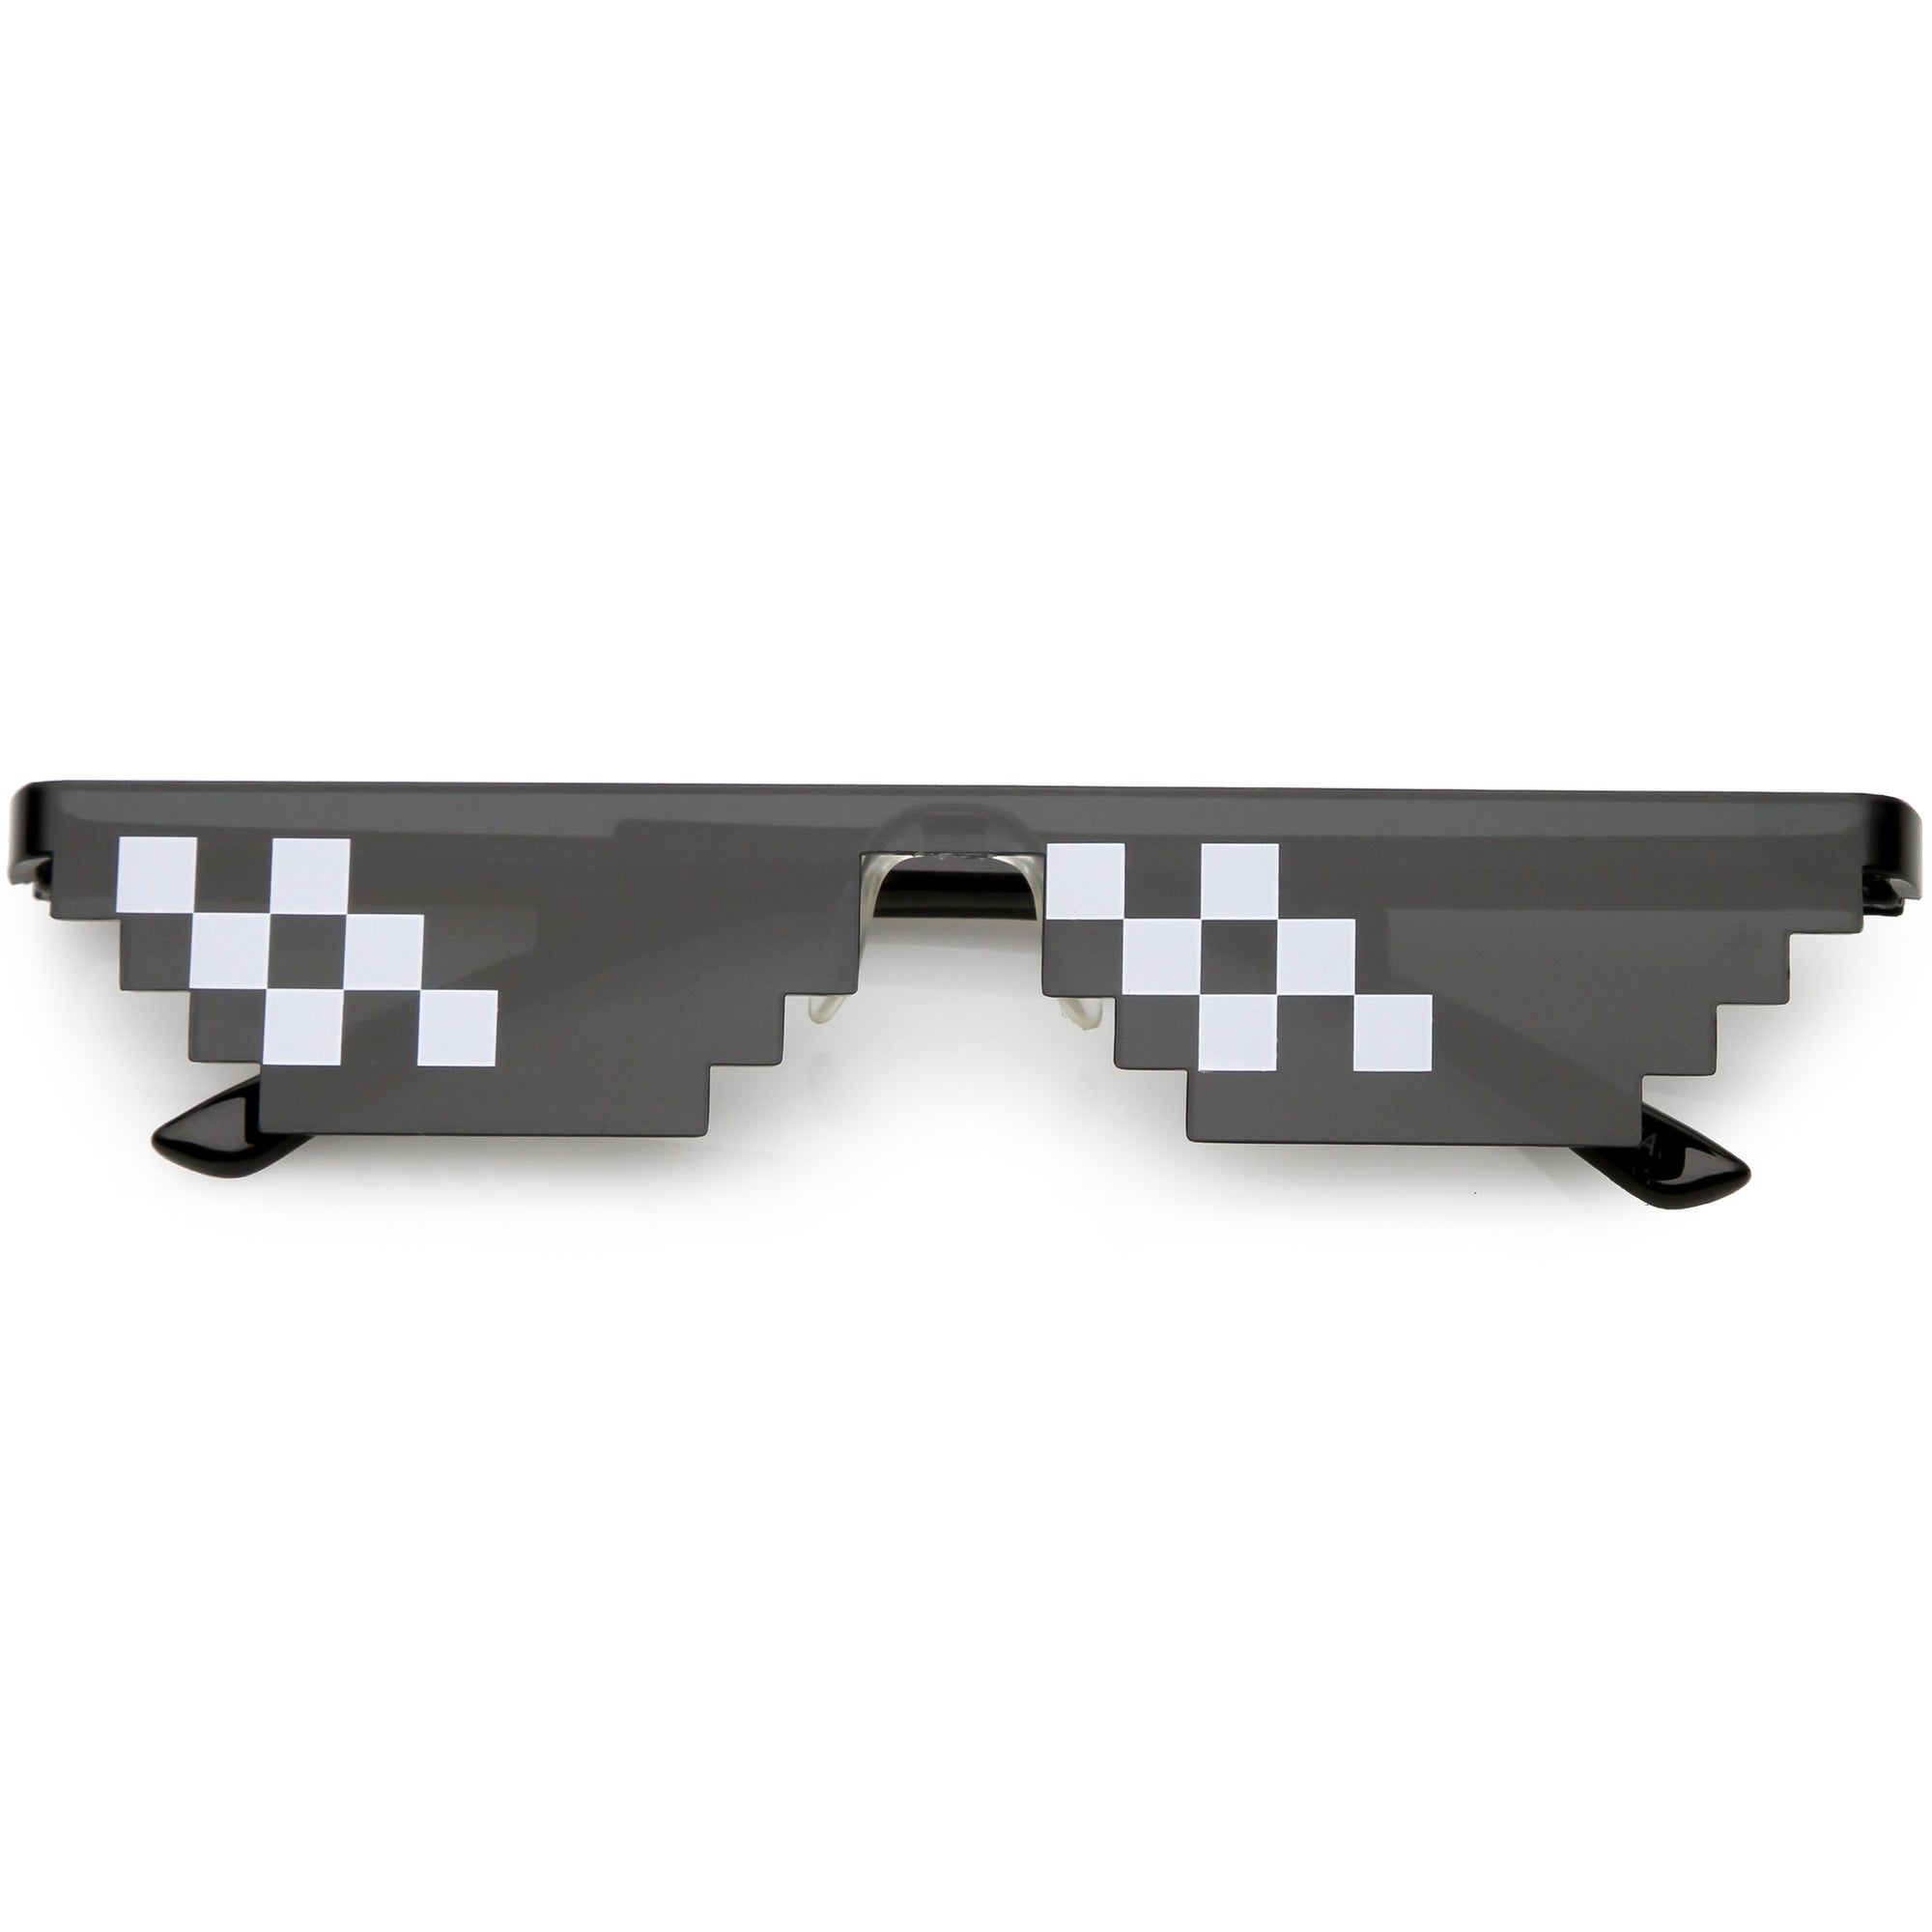 Novelty Thug Life Meme Deal With It Cartoon 8 Bit Sunglasses C635